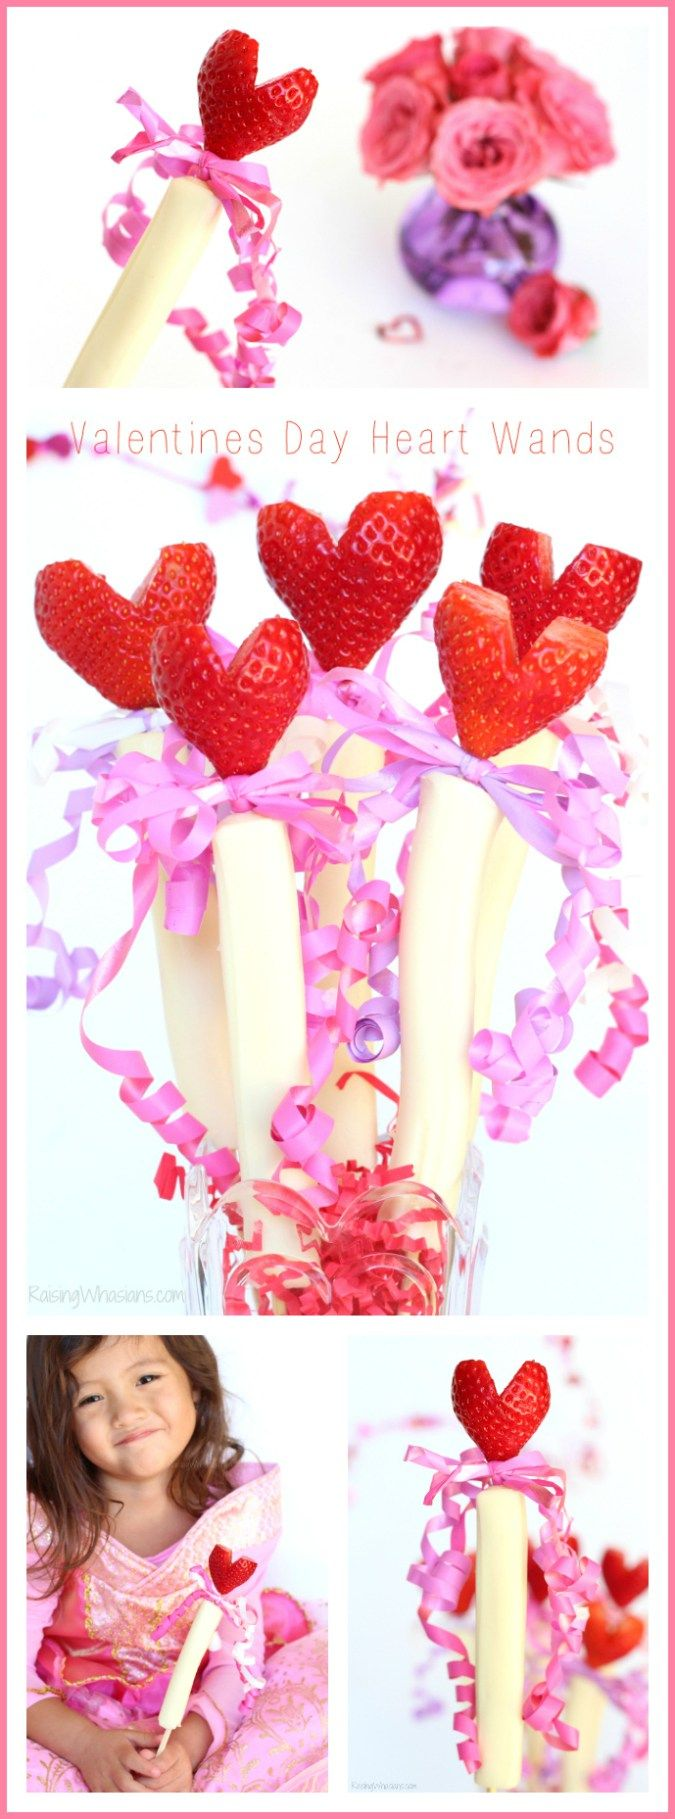 Valentine's Day Heart Wands Snack Idea for Your Princess - Raising Whasians (AD)